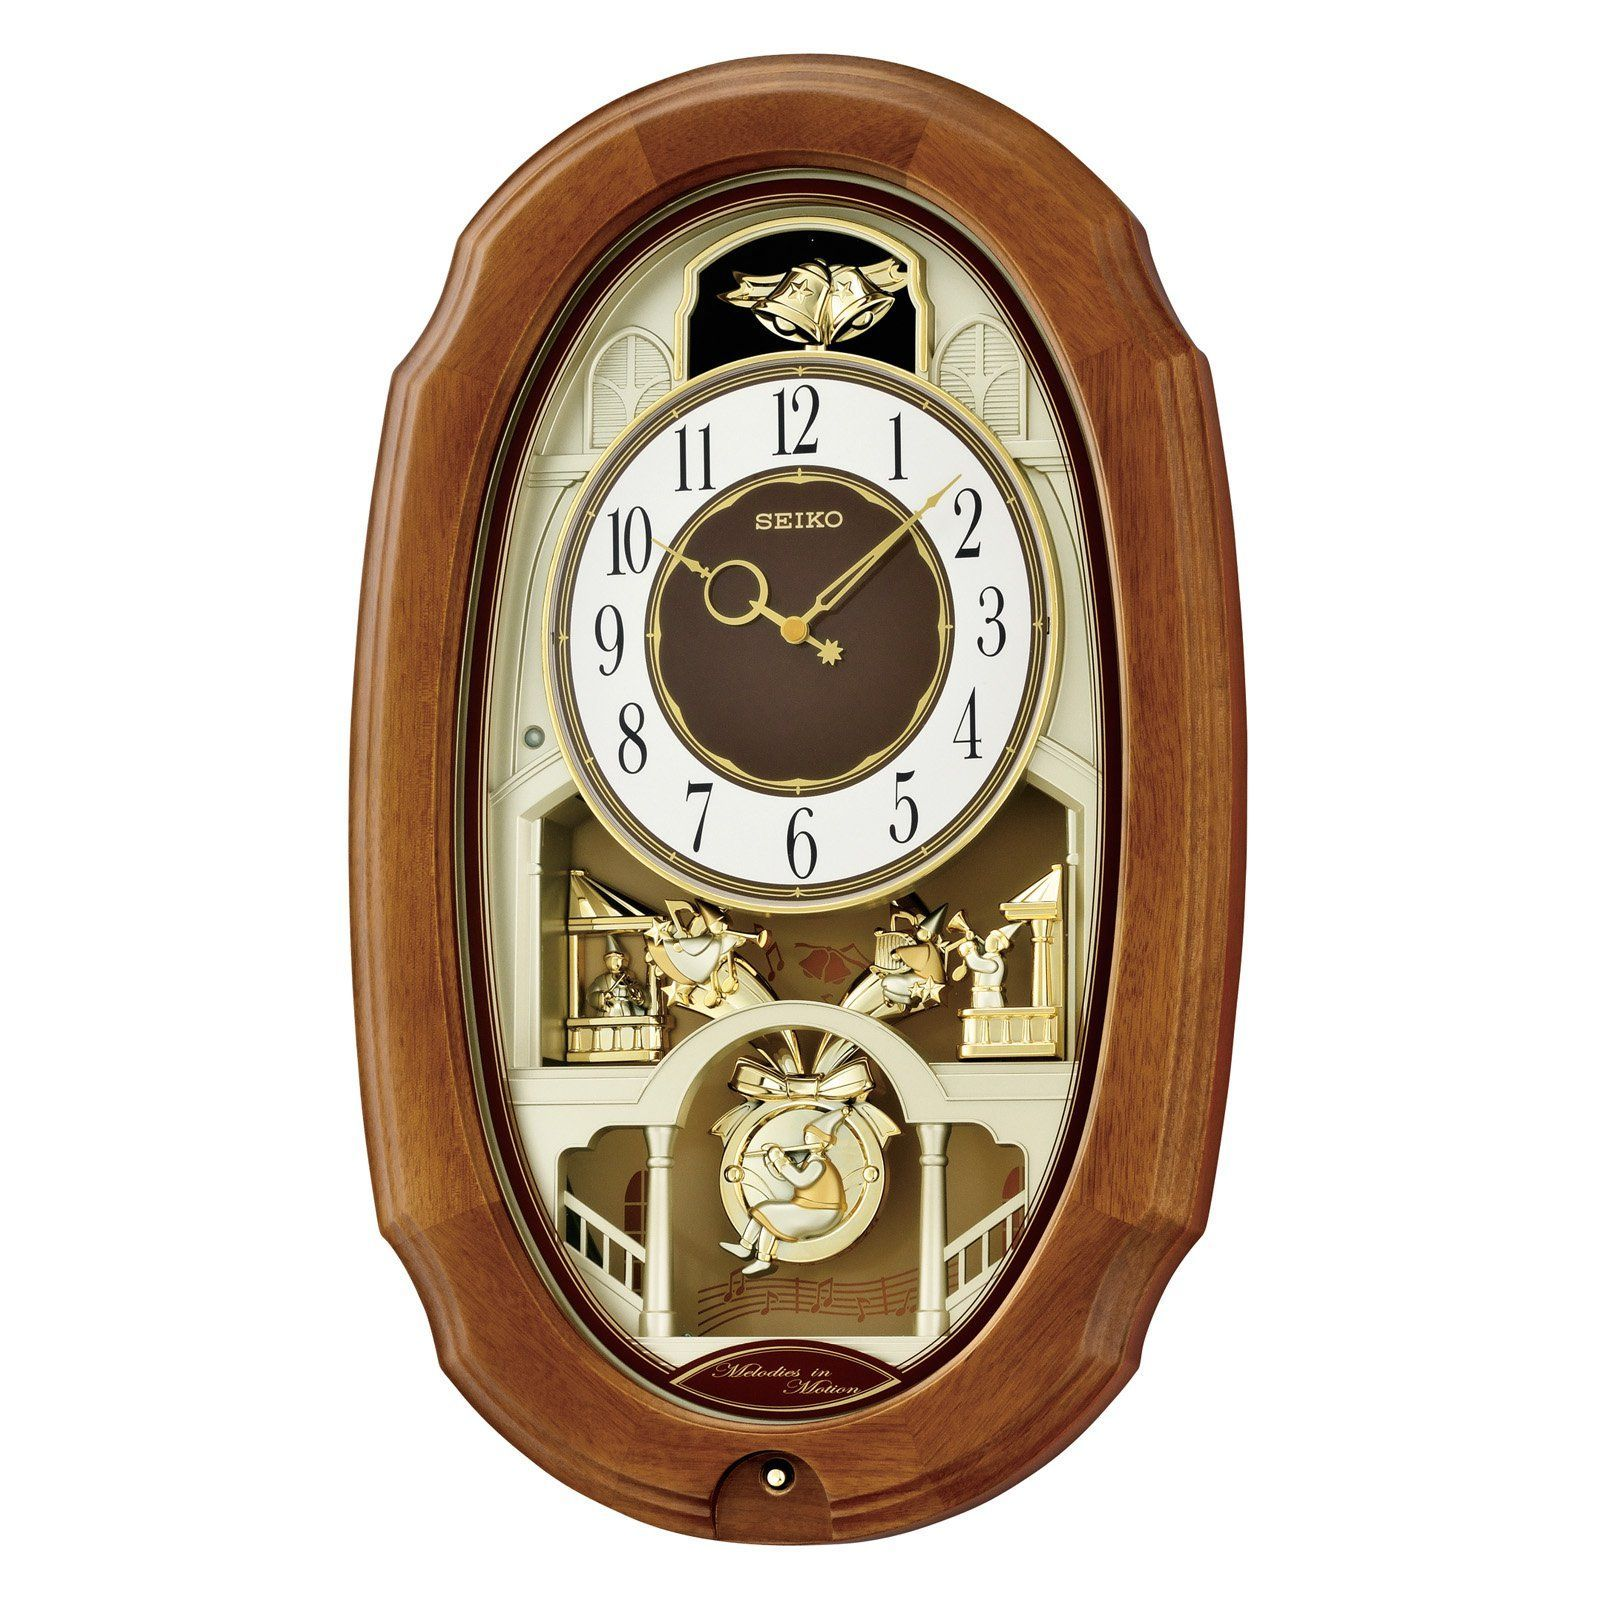 Have To Have It Seiko Town Square Melodies In Motion Wall Clock 11 In Wide 184 99 Hayneedle Clock Wall Clock Large Wall Clock